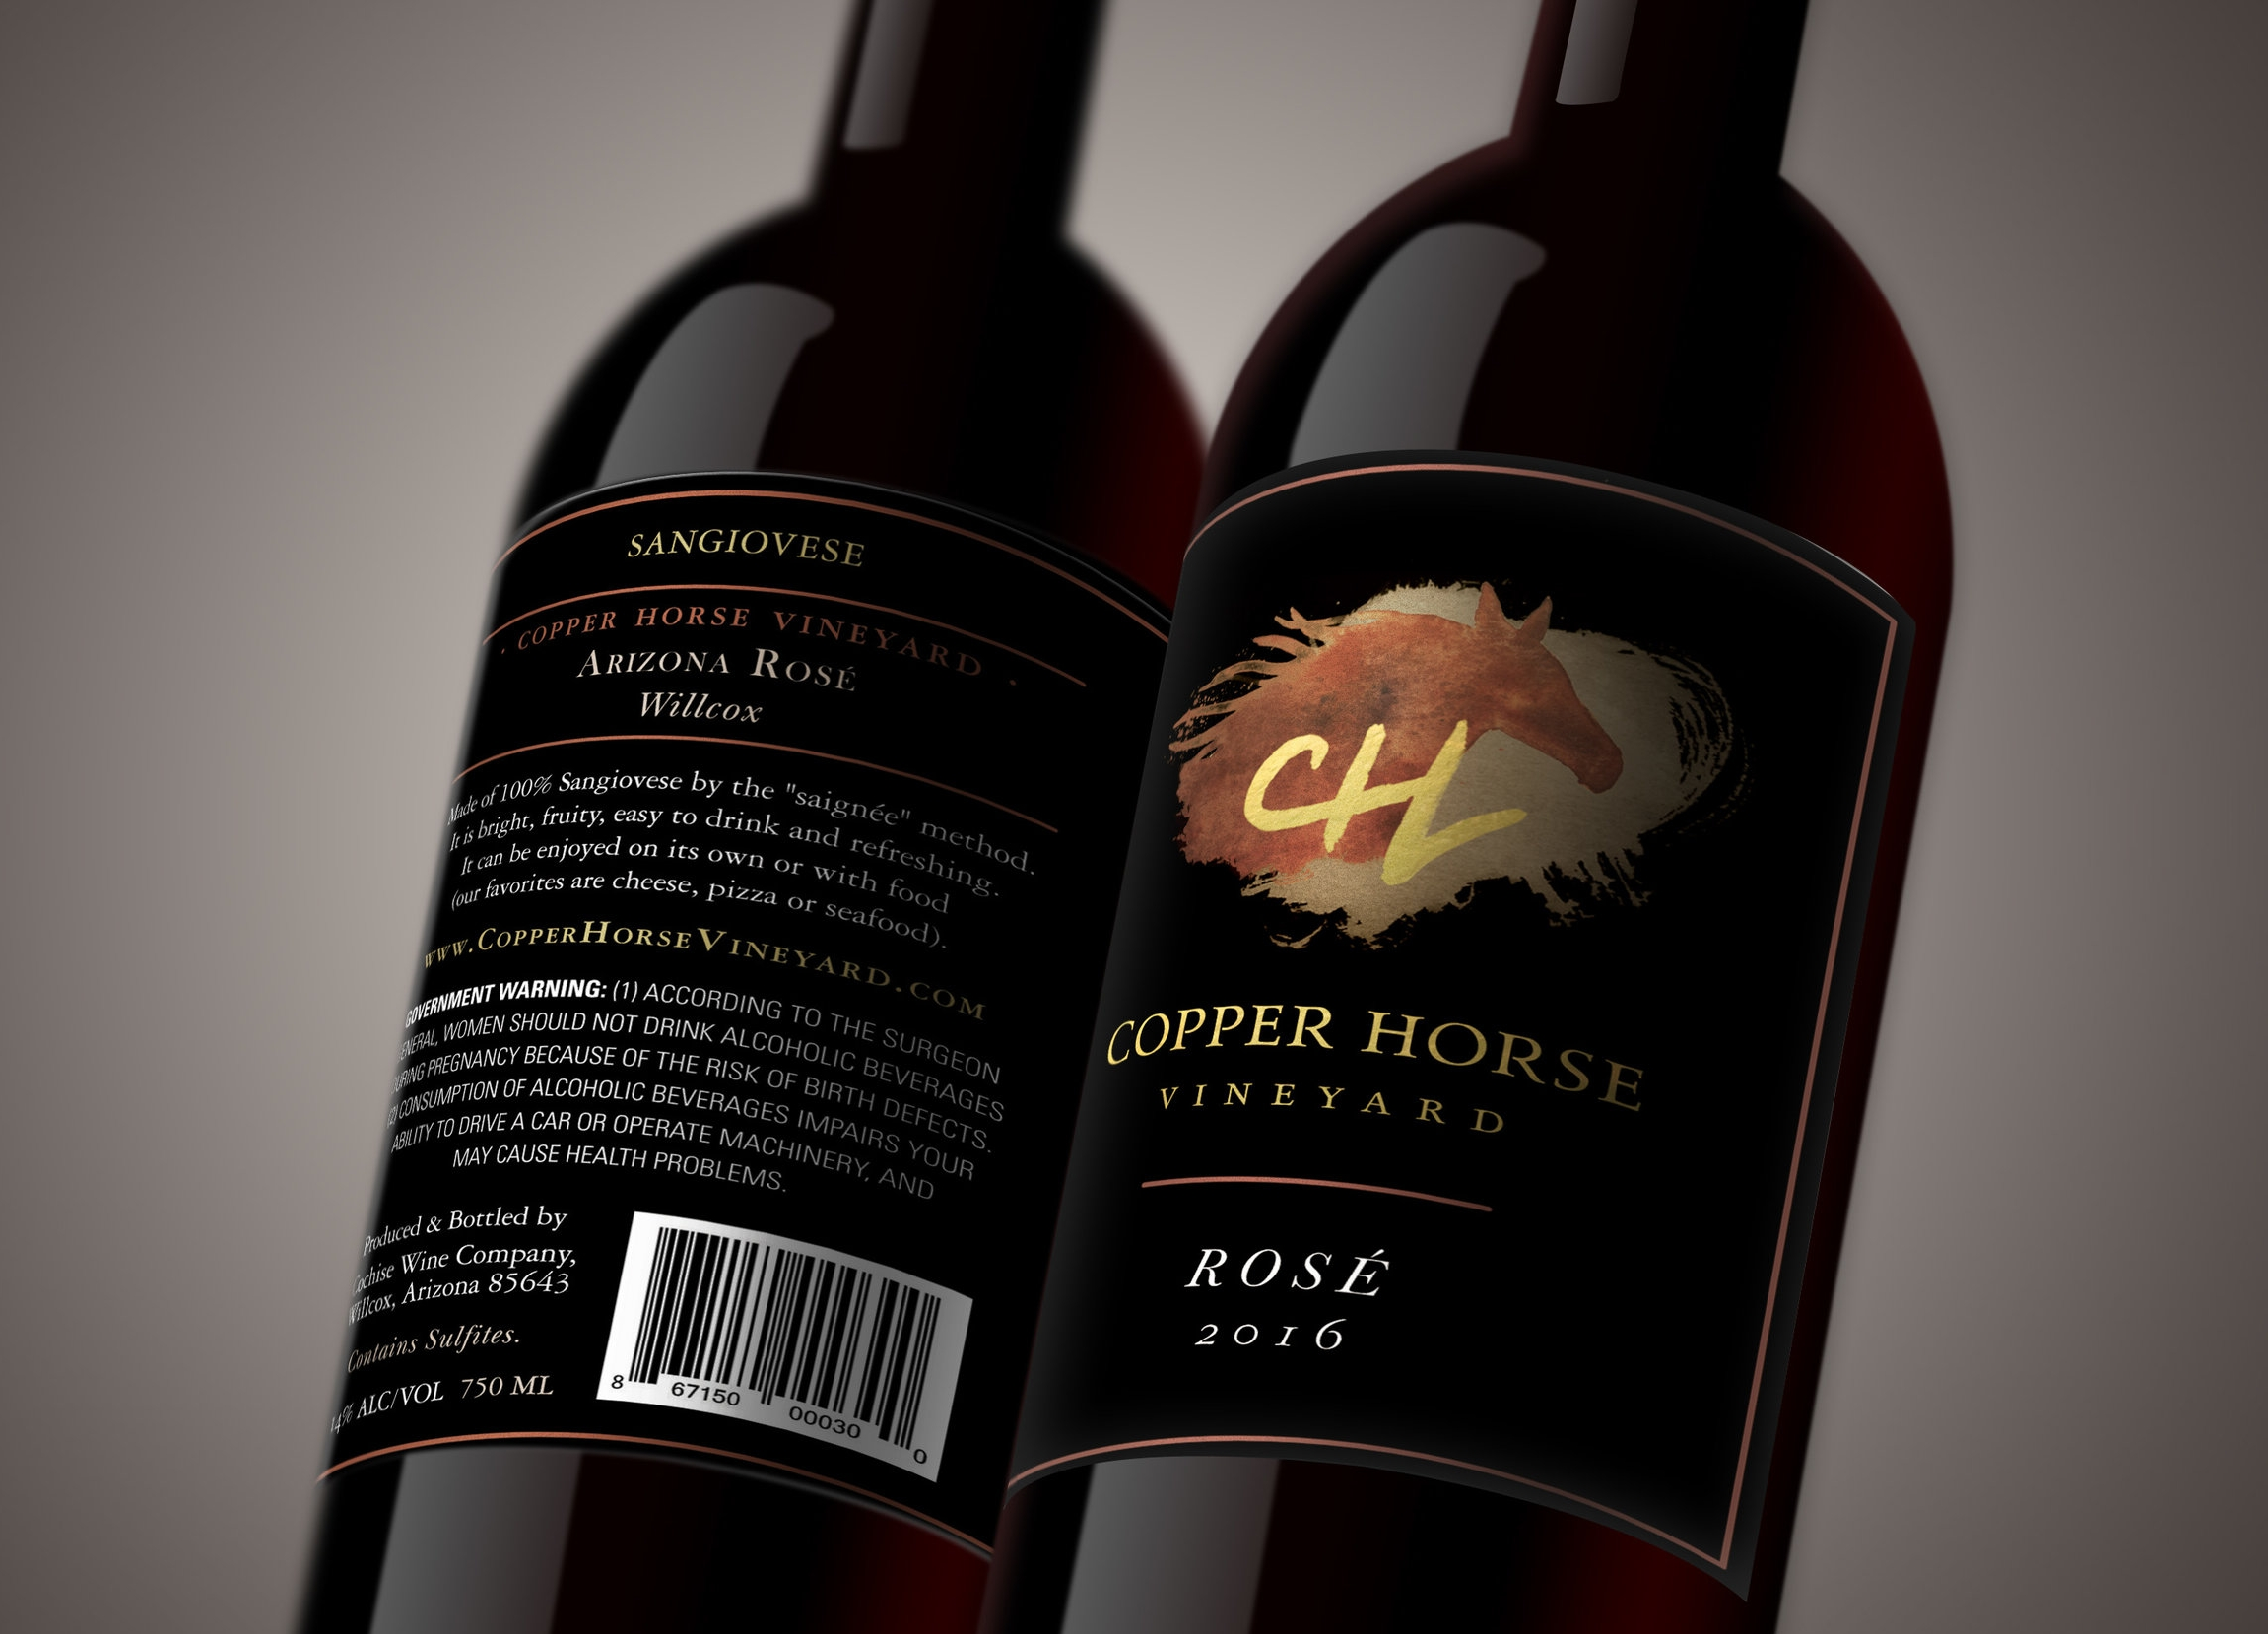 Mock up of the labels on the bottle